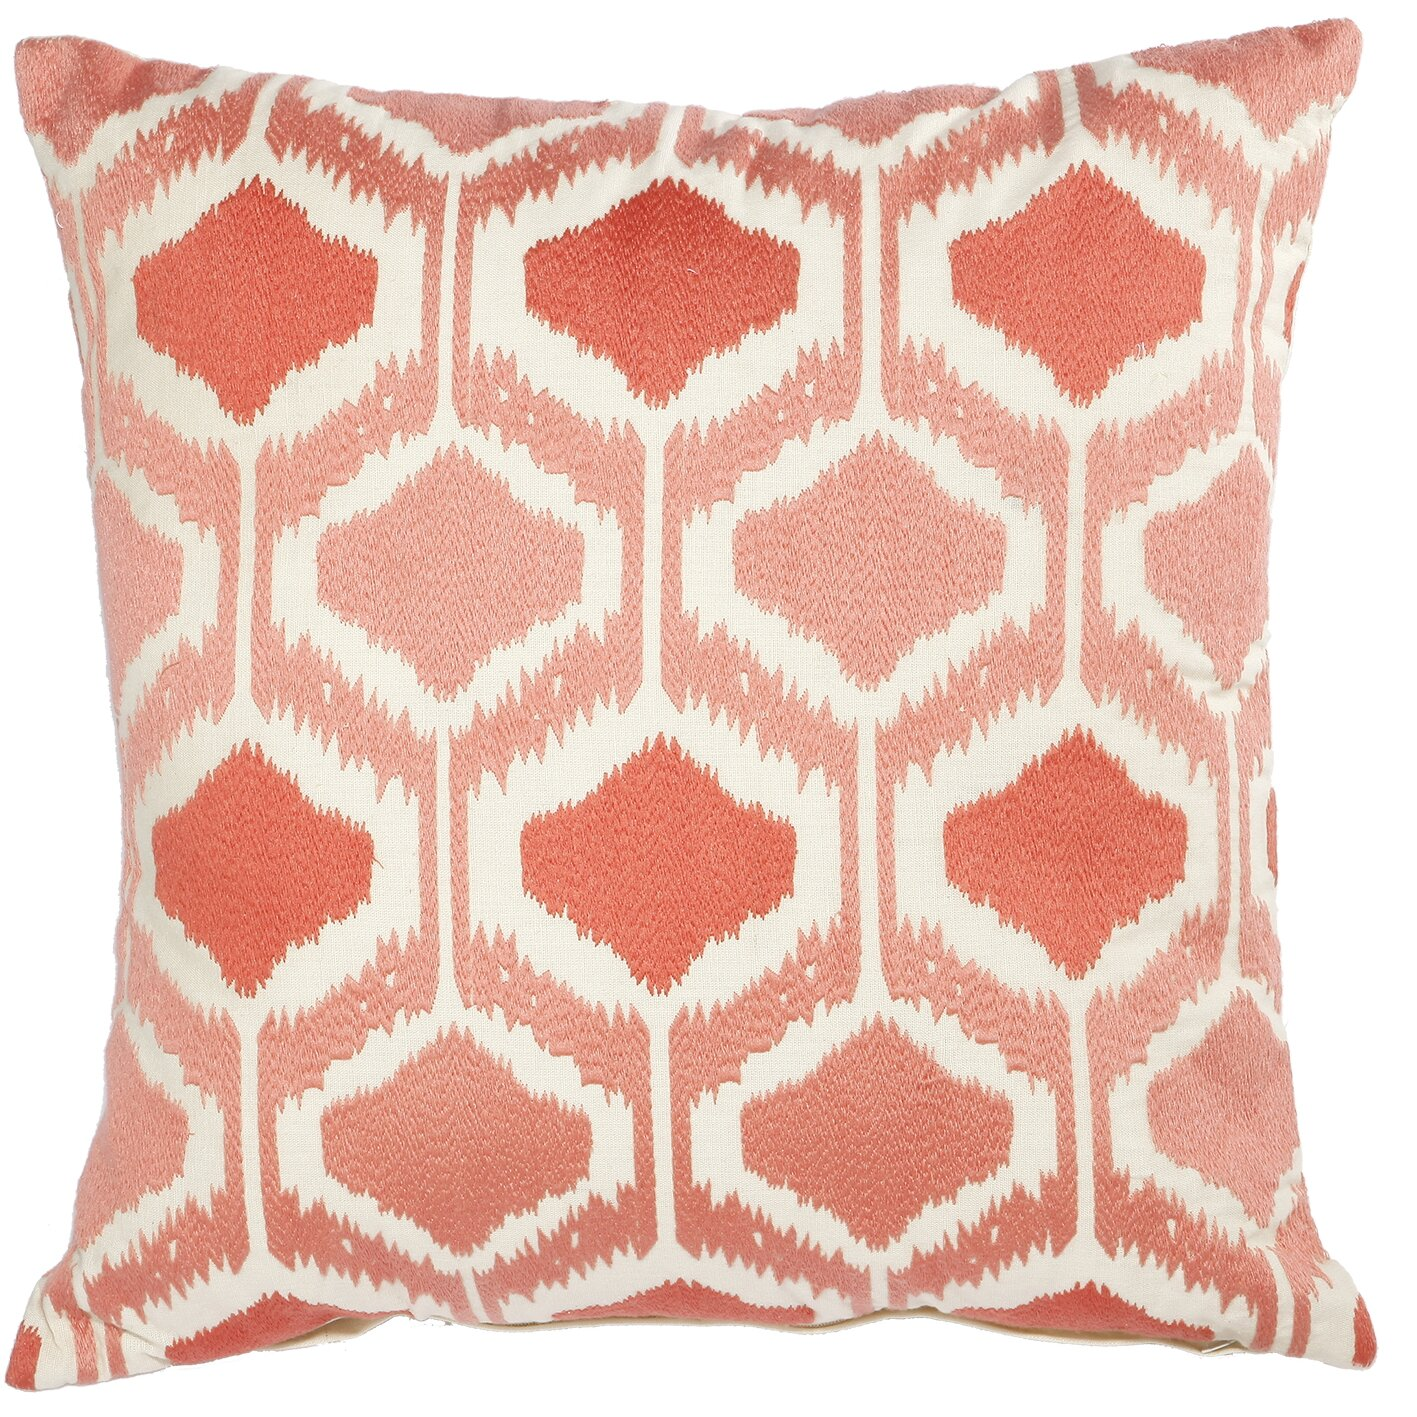 Coral Bed Throw Pillows : A&B Home Mila Pillow in Coral & Reviews Wayfair